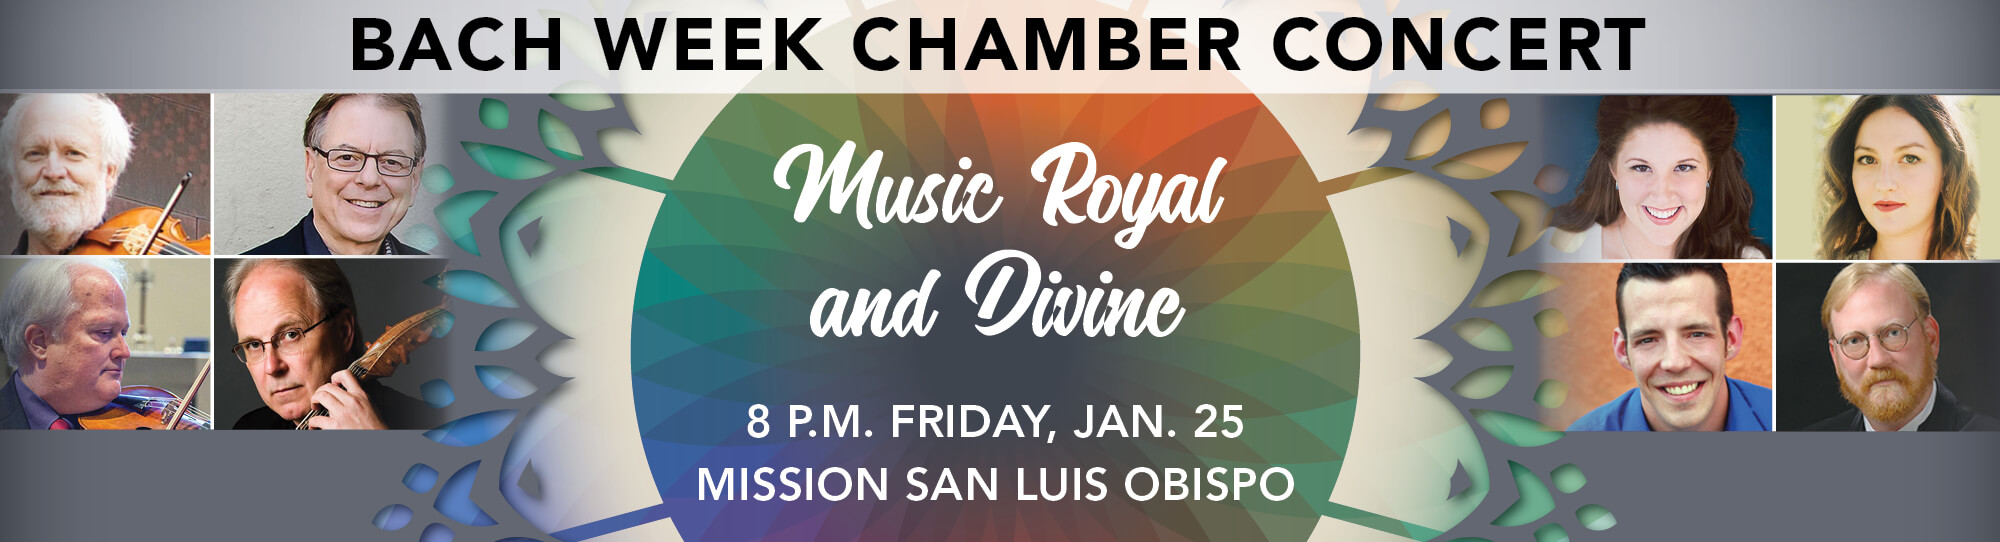 Bach Week Chamber Concert: Music Royal and Divine event banner